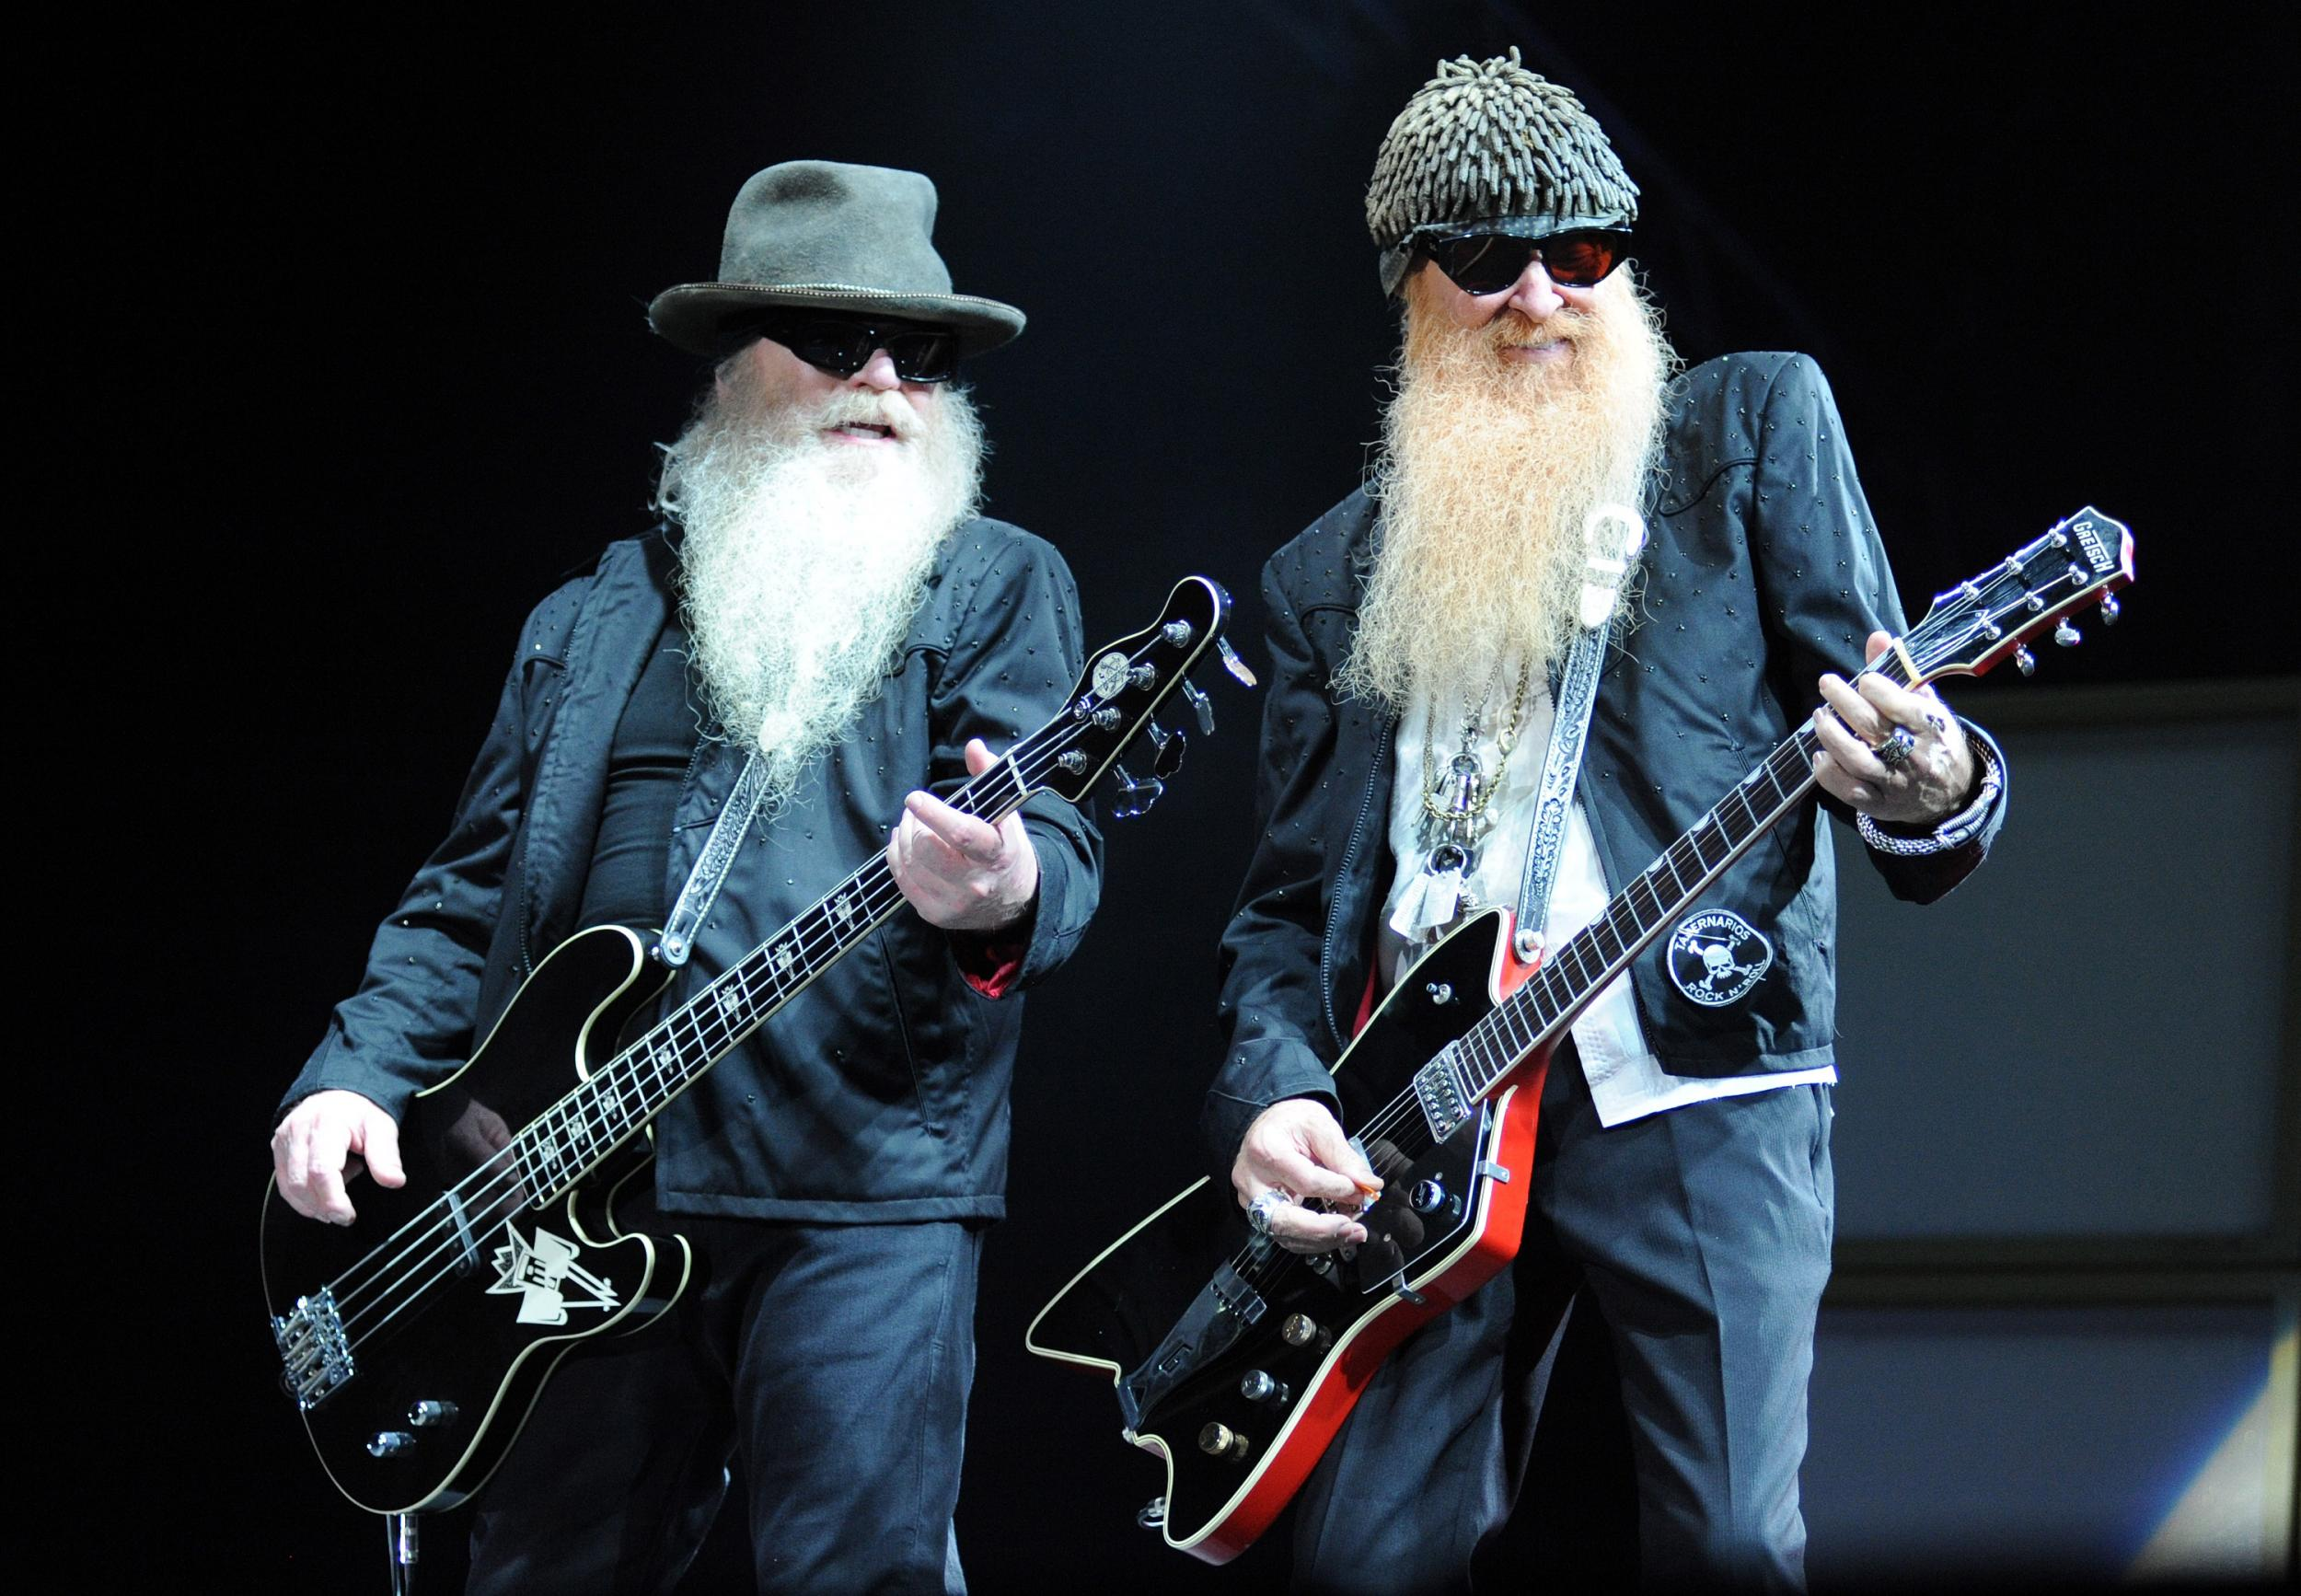 Glastonbury 2016 line-up: are ZZ Top the first act to be announced?